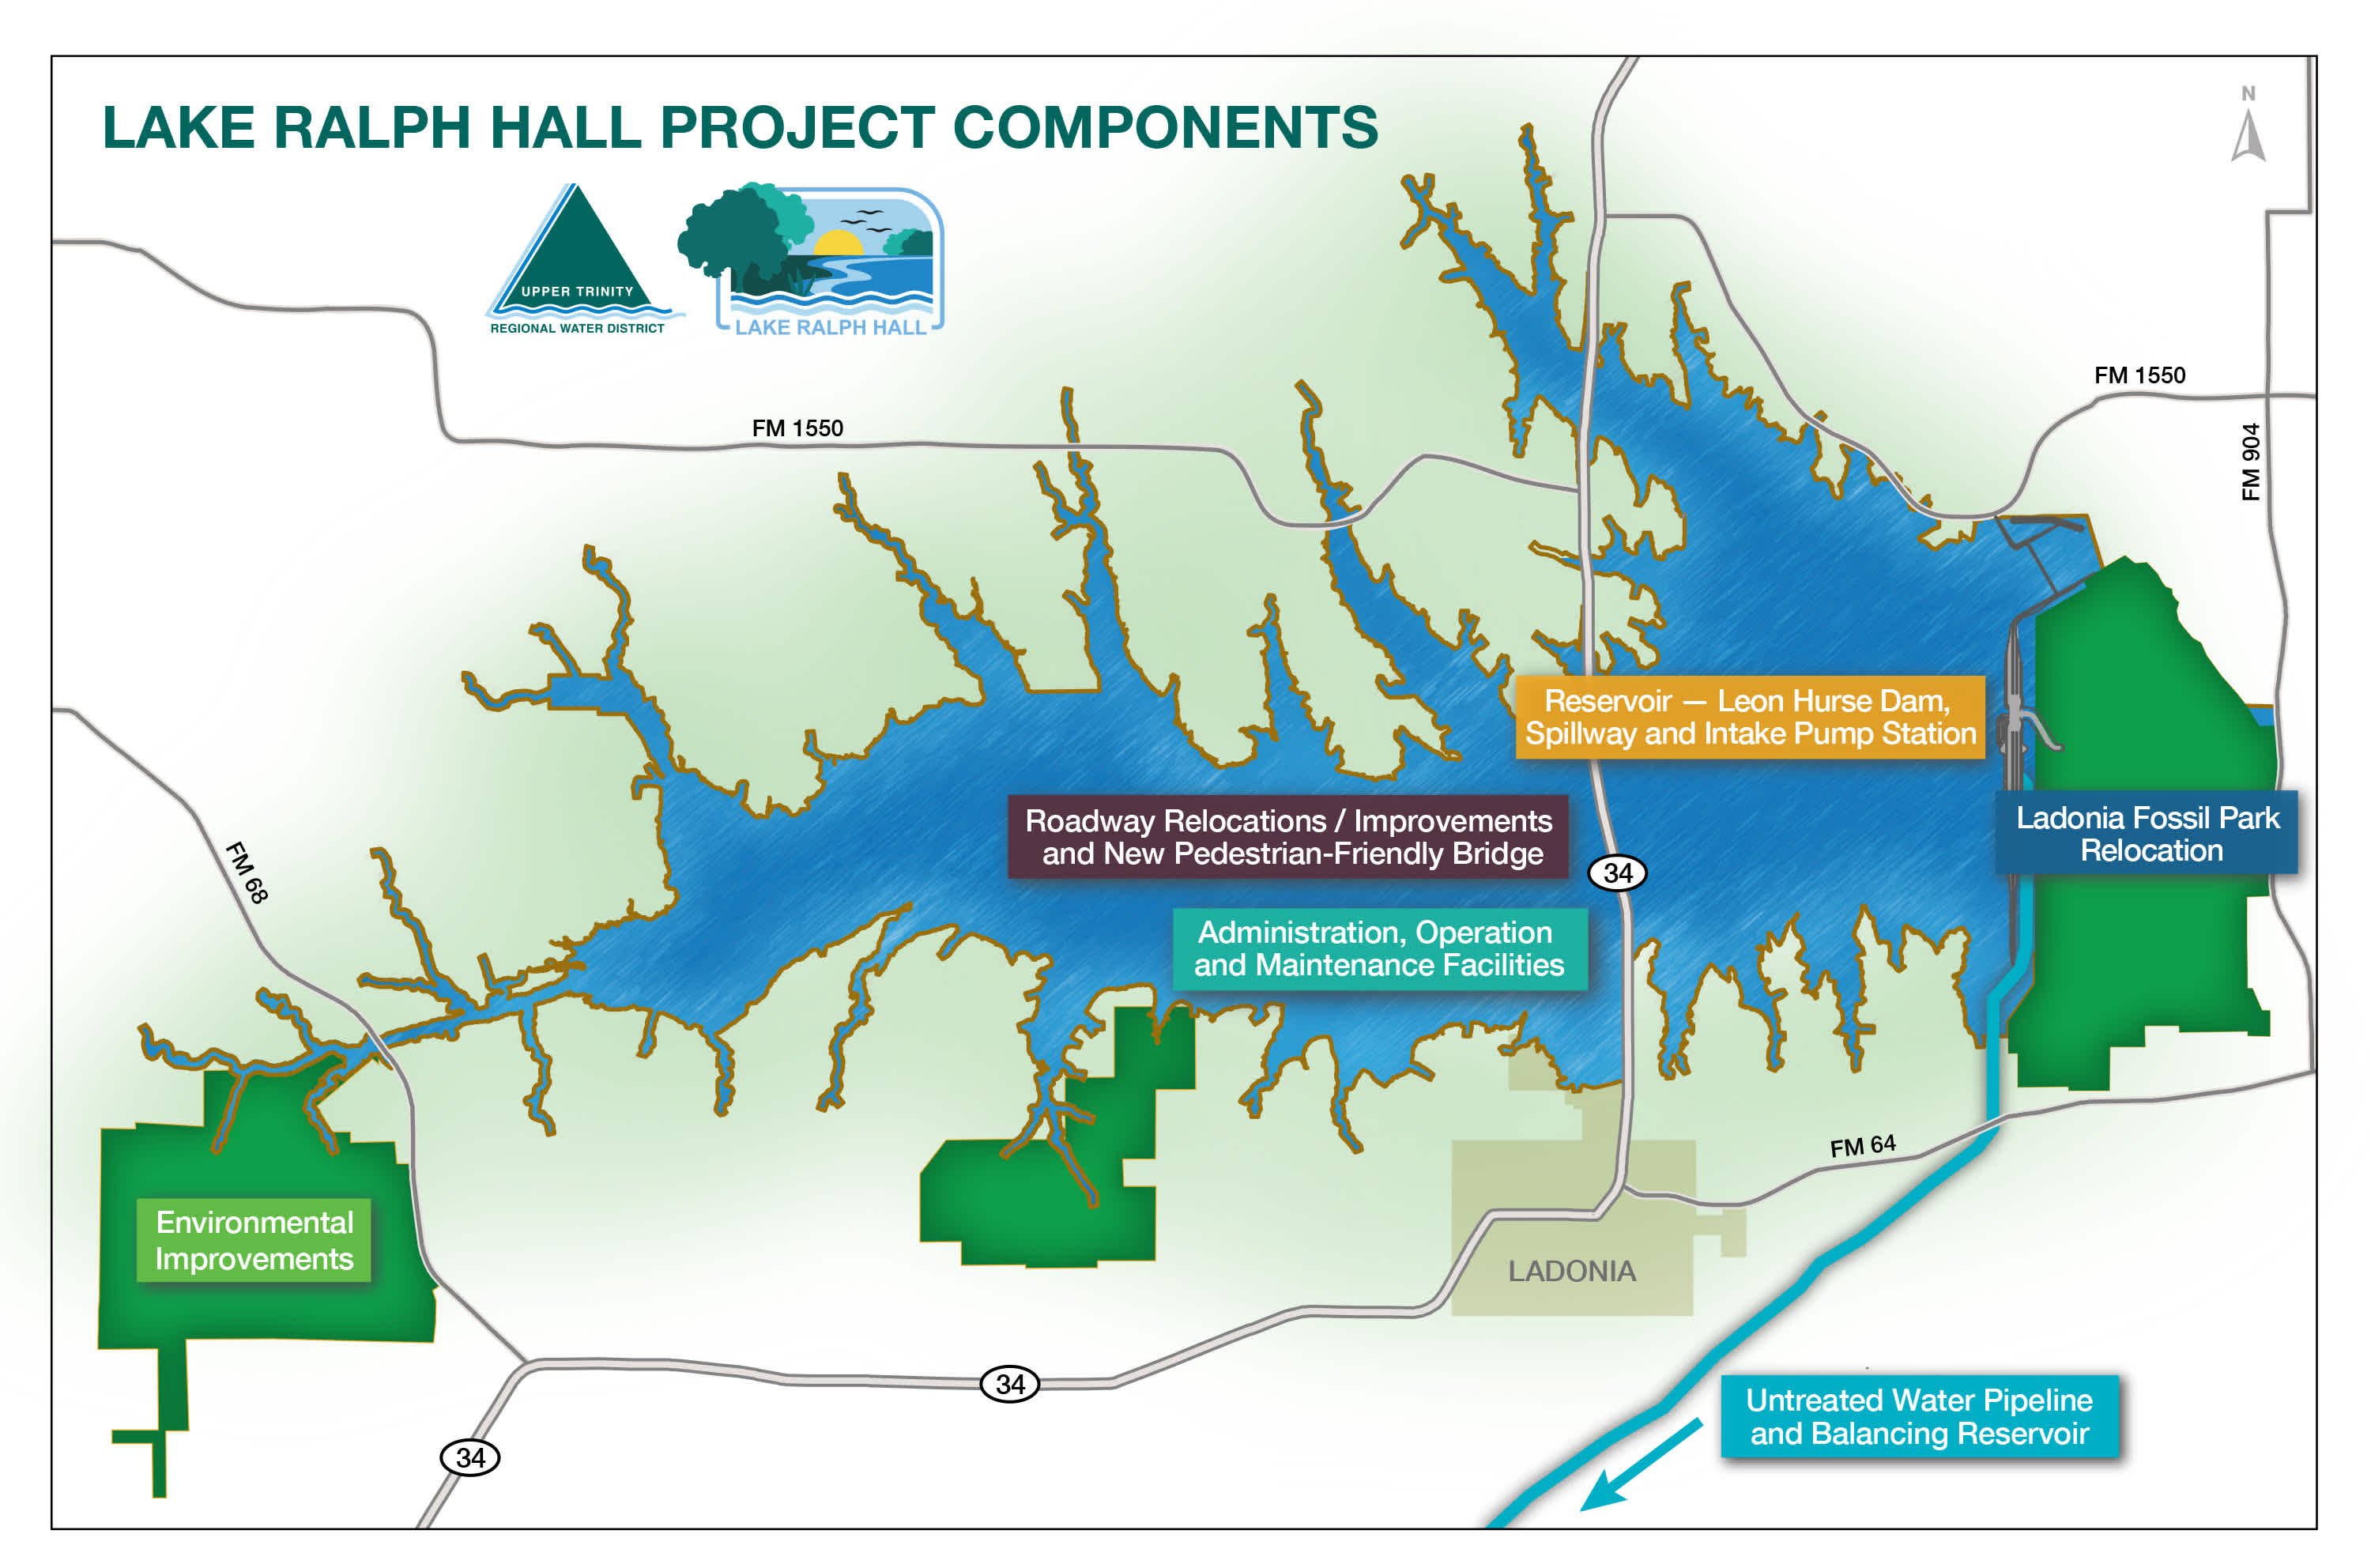 Lake Ralph Hall Project Components